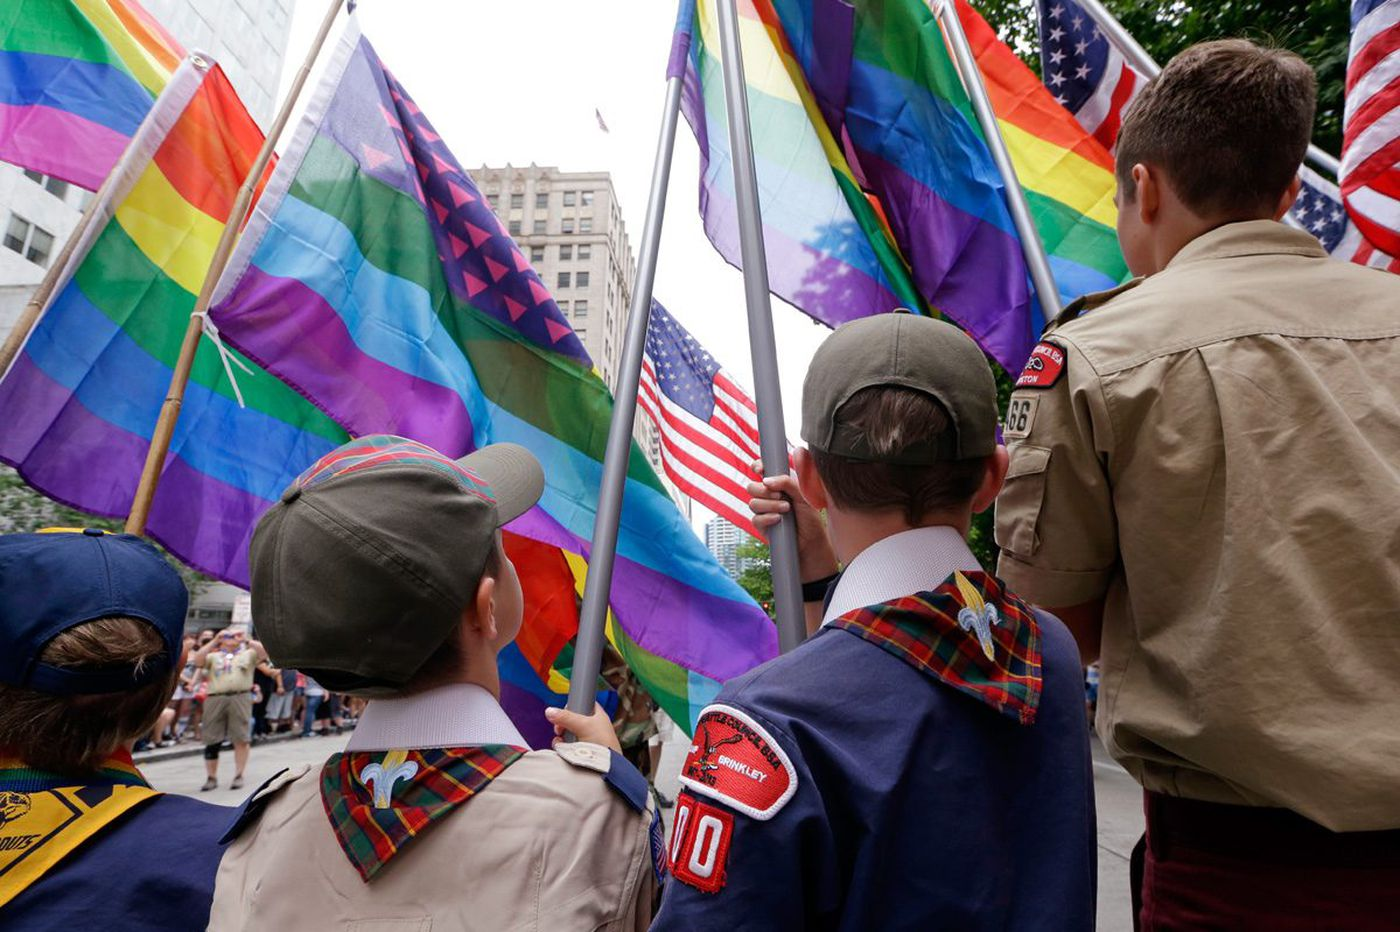 Boy Scouts' latest move leaves atheists scratching their heads | Perspective